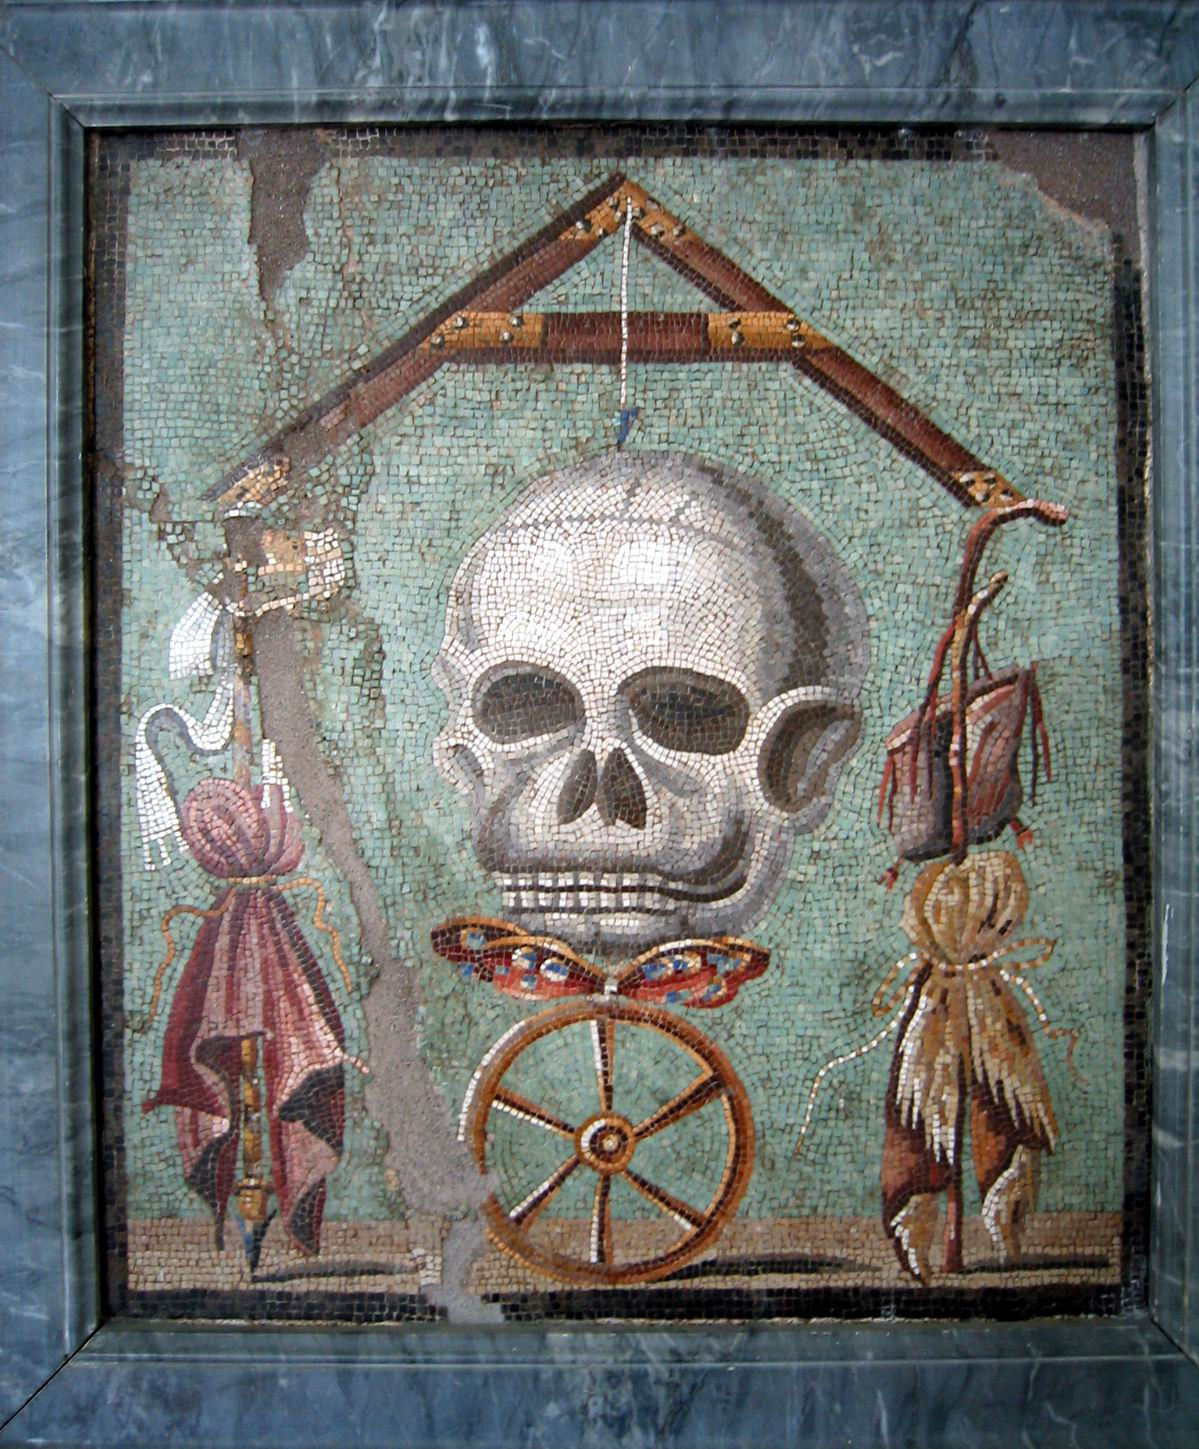 The midnight freemasons the skull crossbones and freemasonry pd newman writes of the ritual of years long past where it is referred to as the bone box which holds the key or pass buycottarizona Images